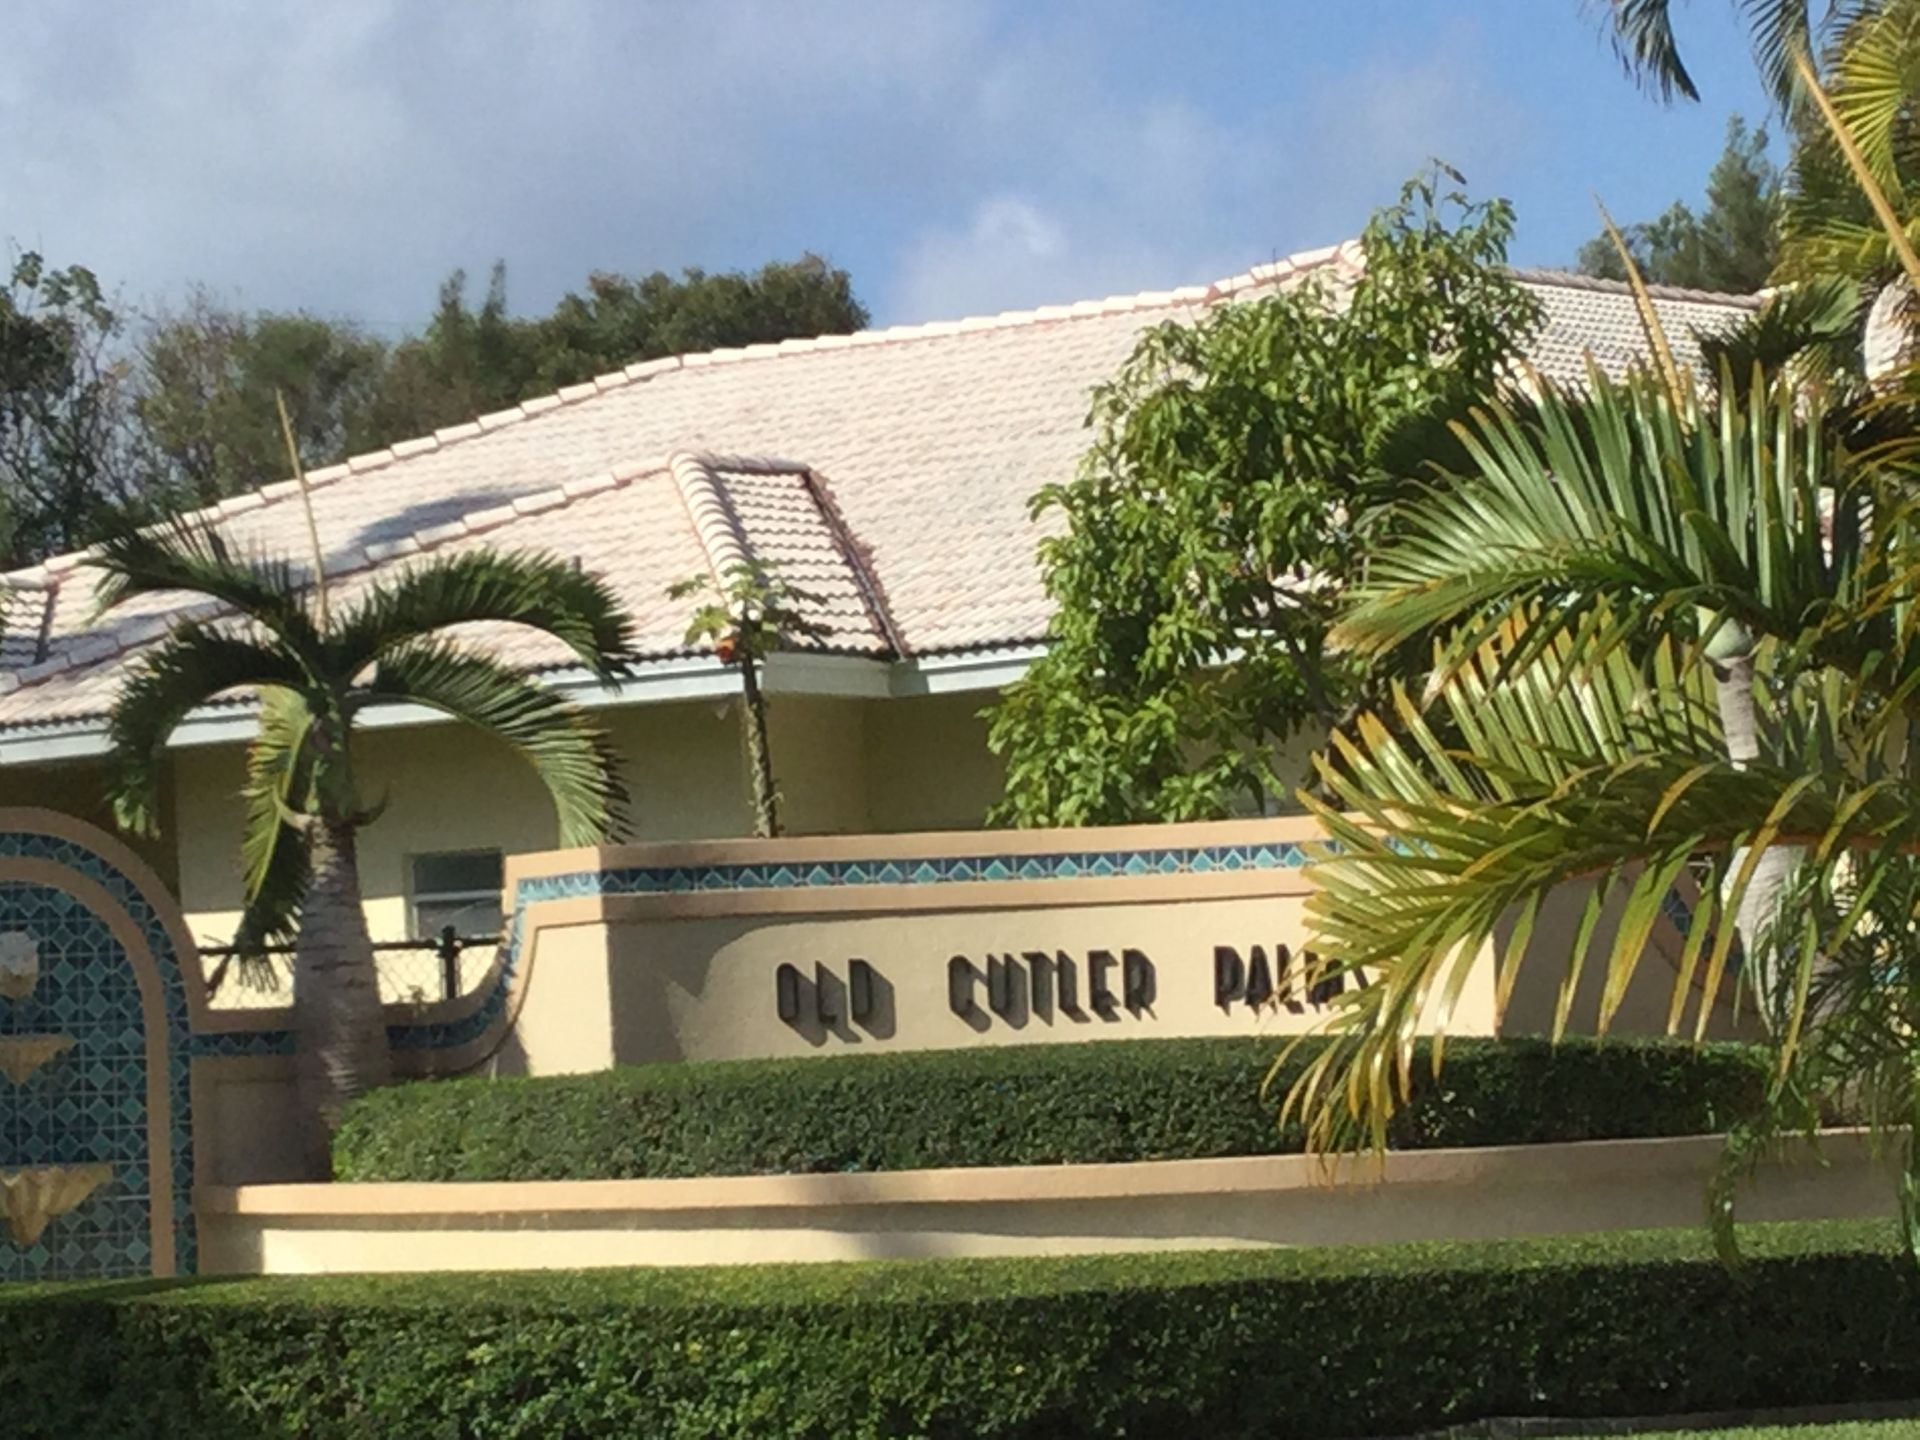 Old Cutler Palms